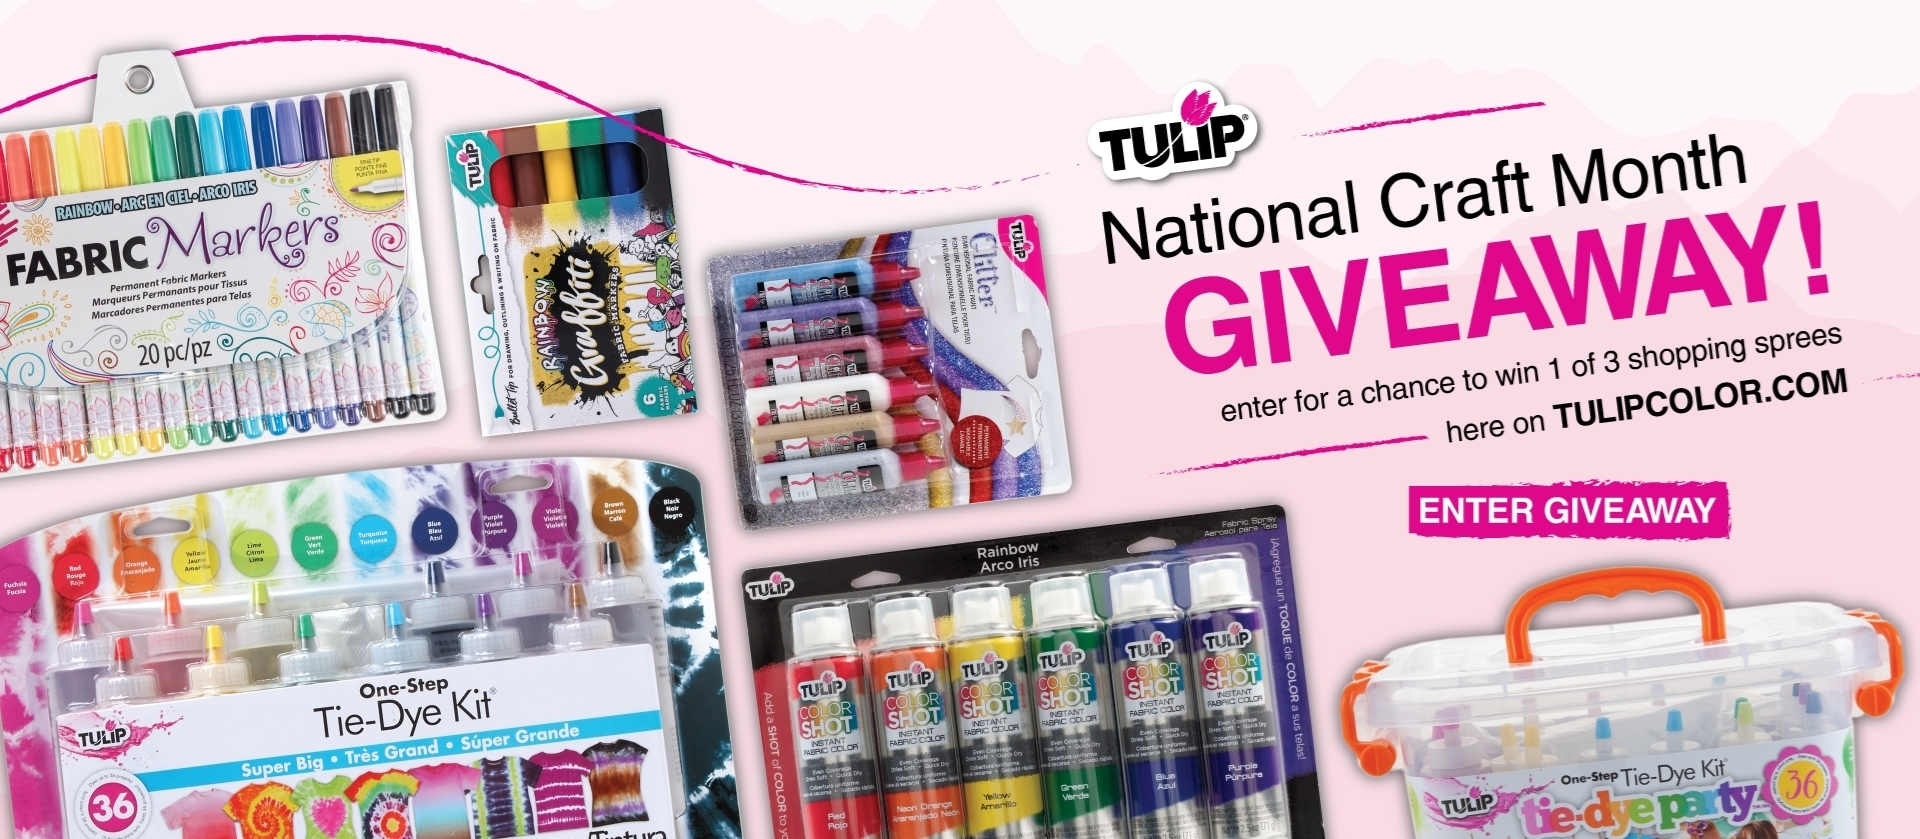 National Craft Month Tulip Giveaway